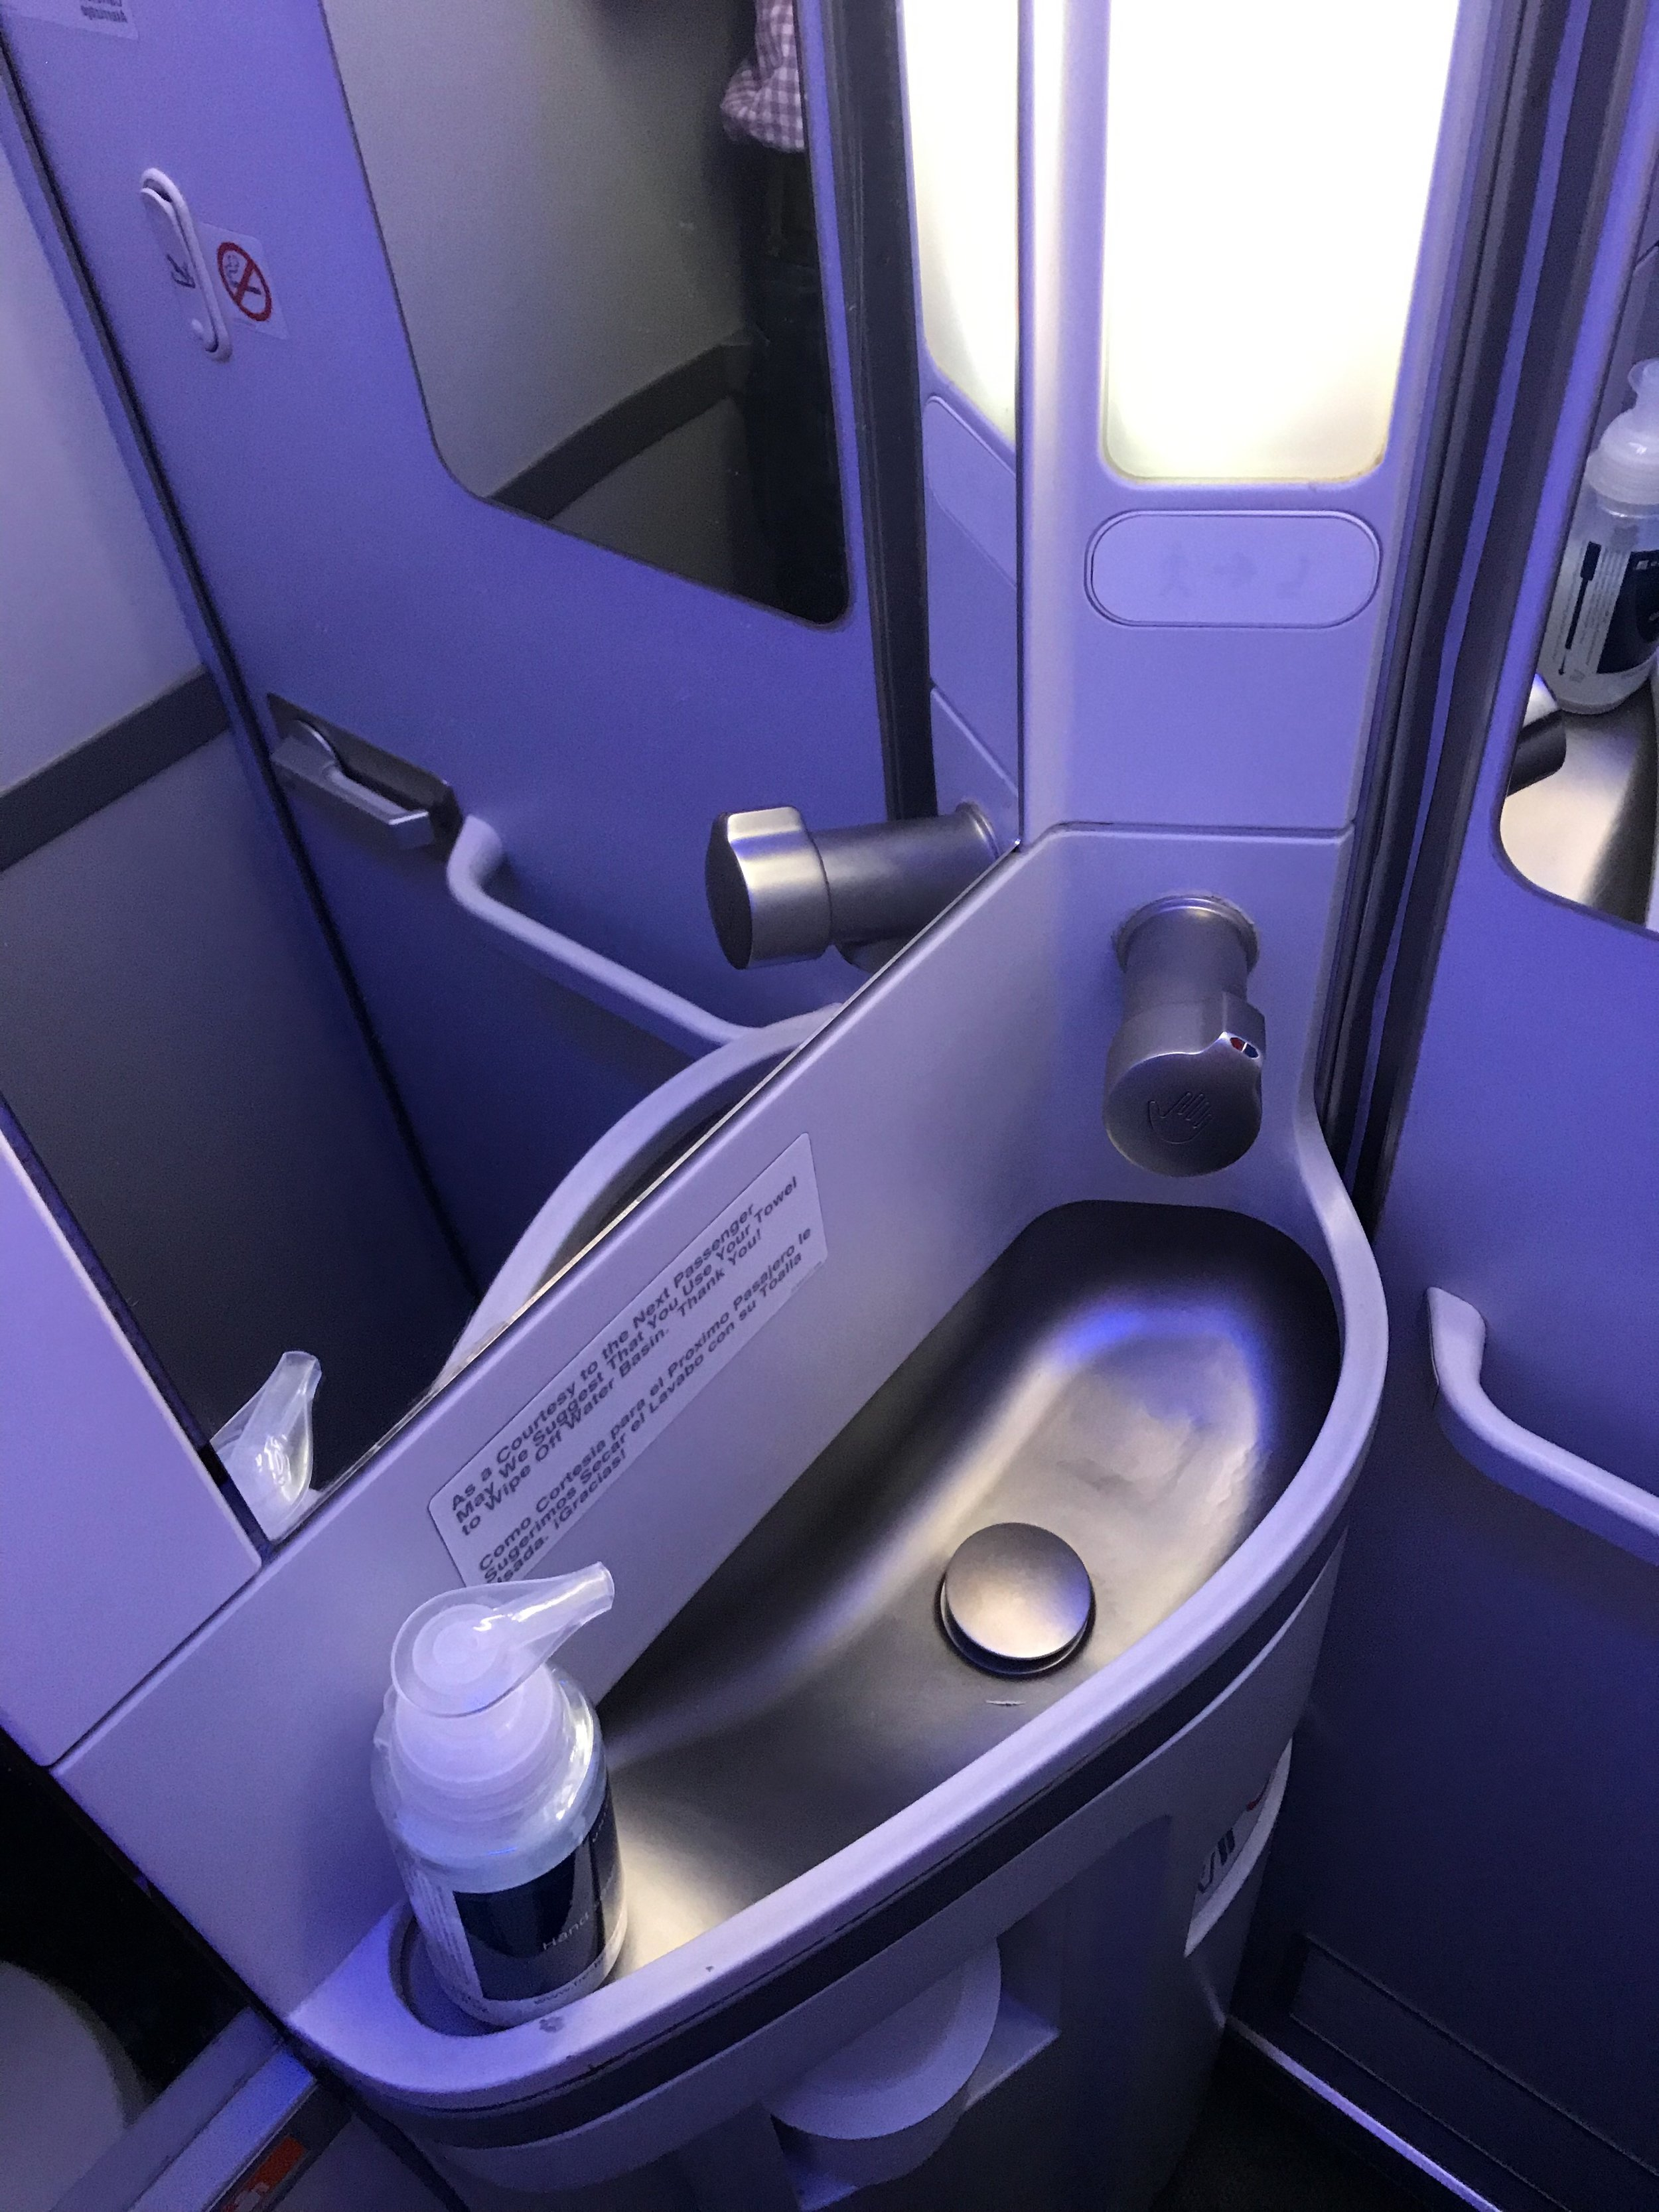 The mid-cabin lavatory was clean, but very tight.